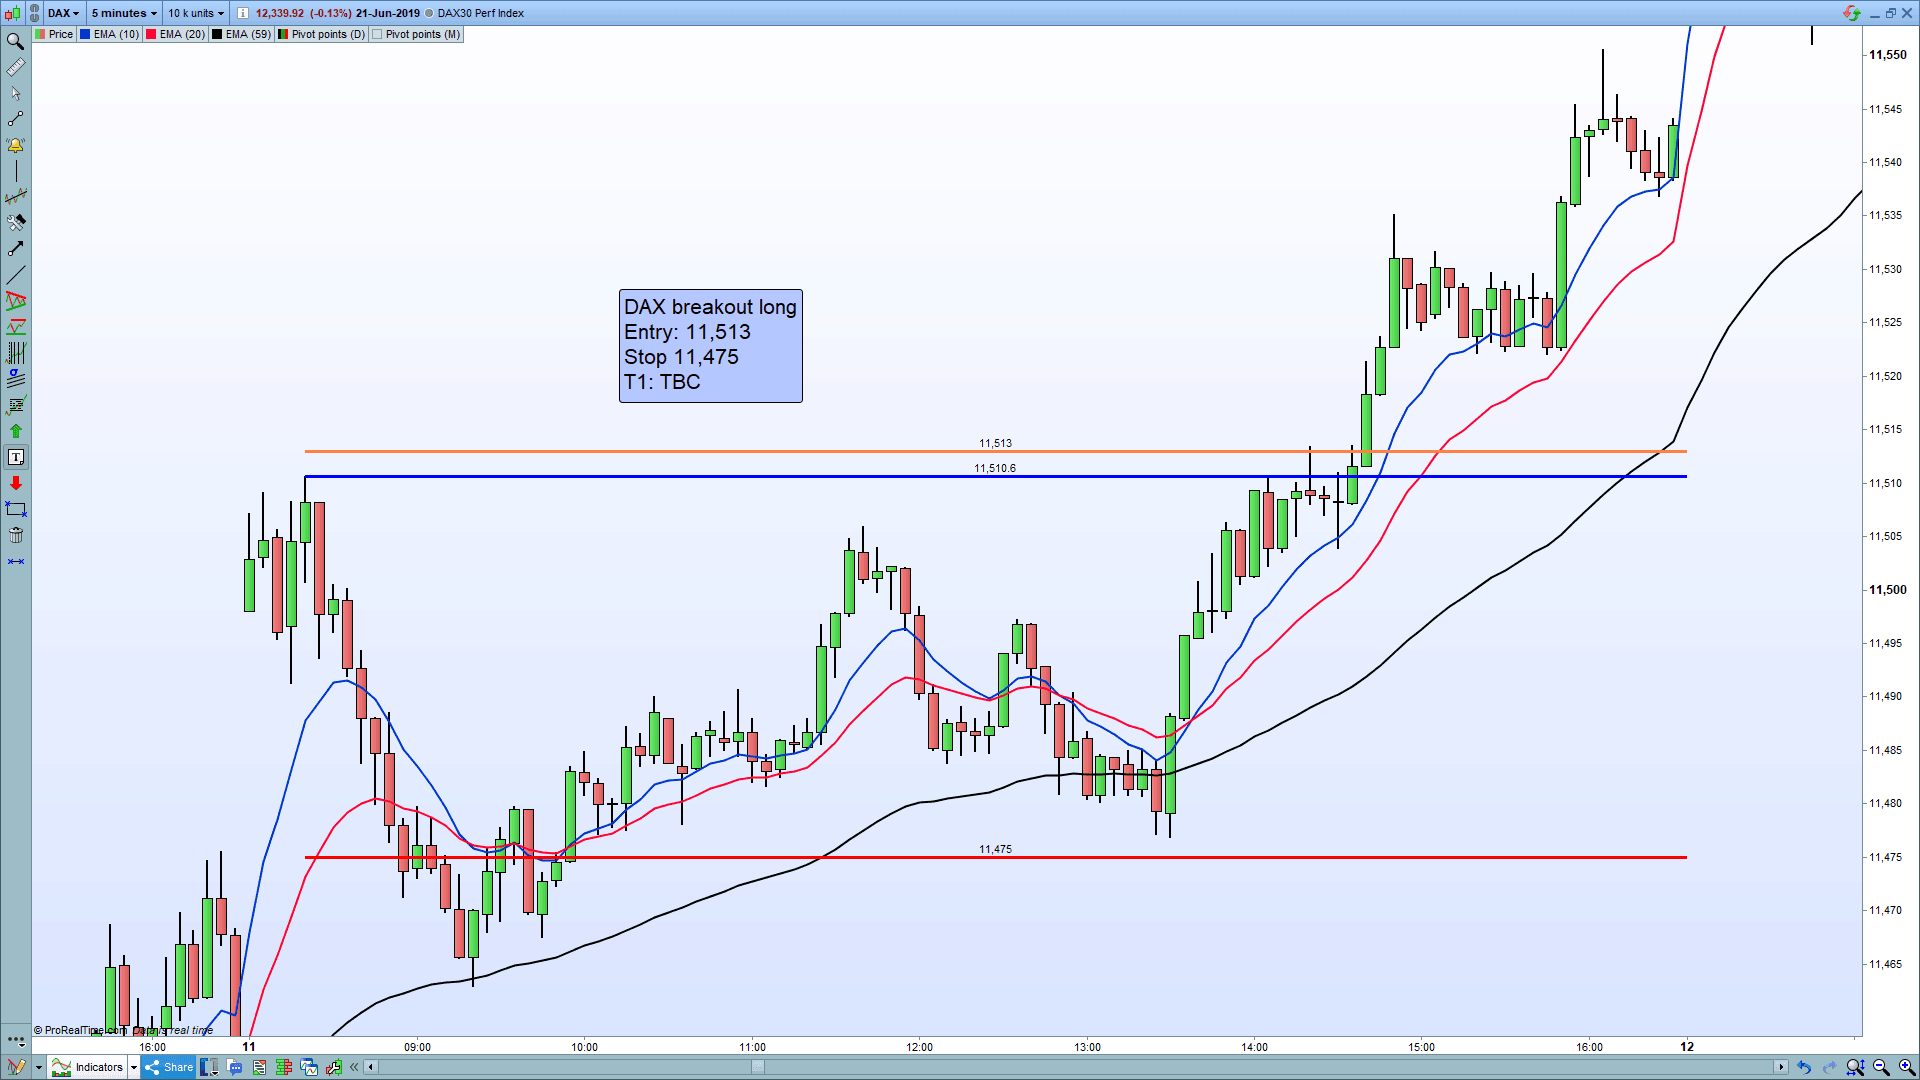 Example of an DAX breakout trade.